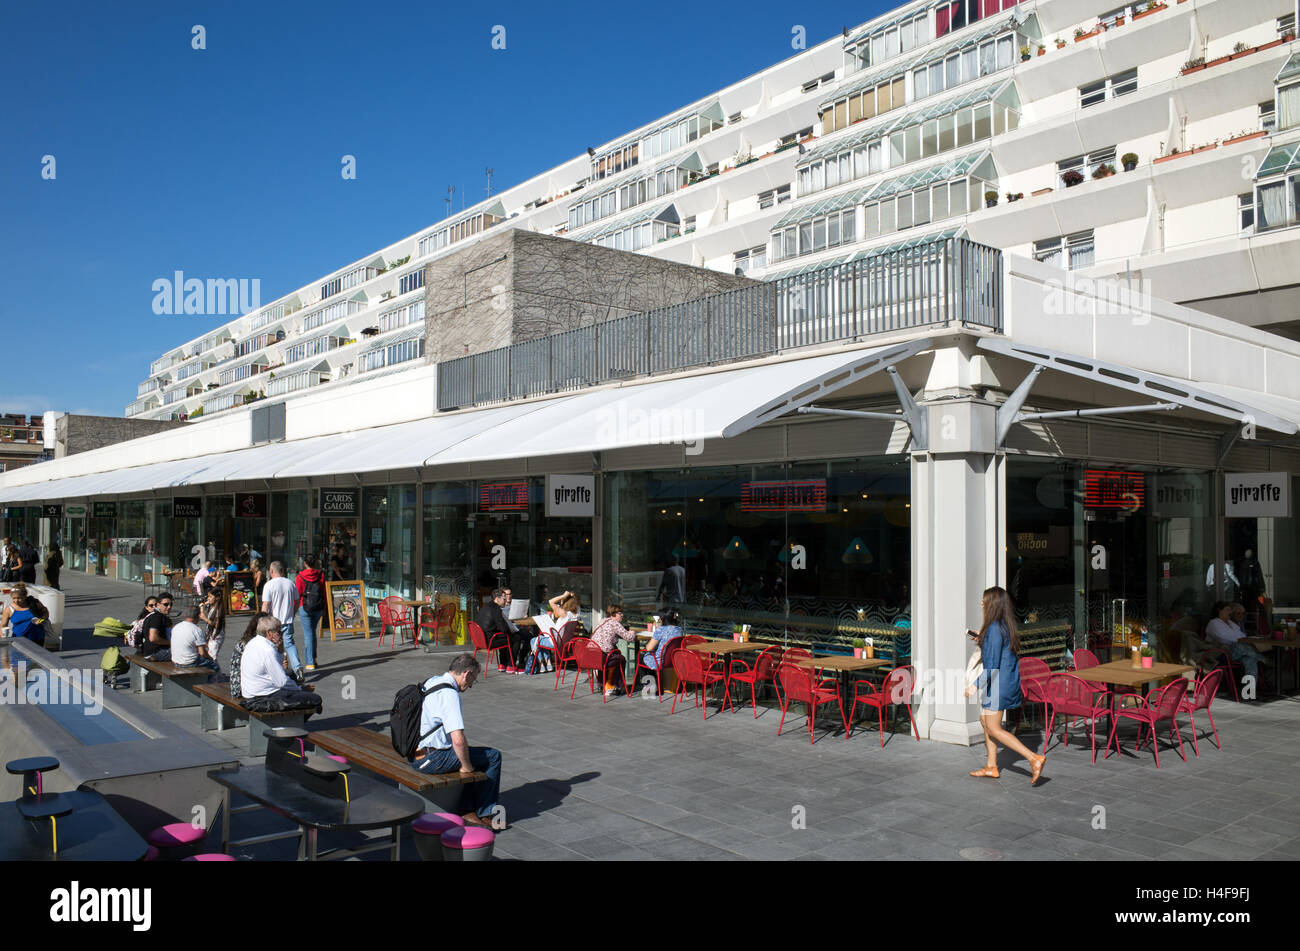 The Brunswick Centre in Bloomsbury, Camden, London, England, UK - Stock Image